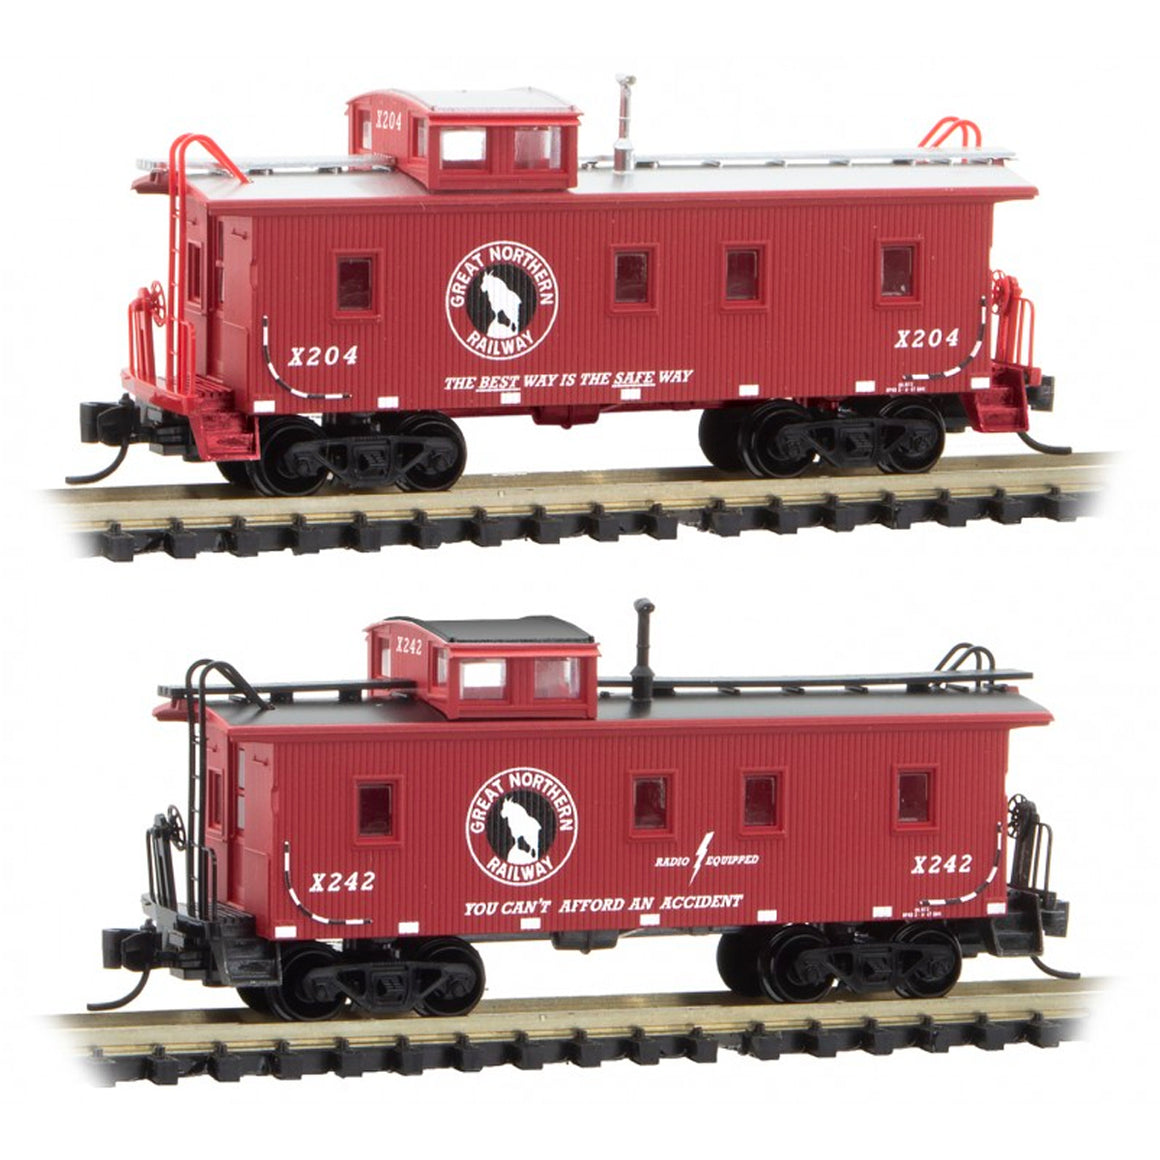 N Scale: 34' Wood Sheathed Caboose - Great Northern - Two Pack